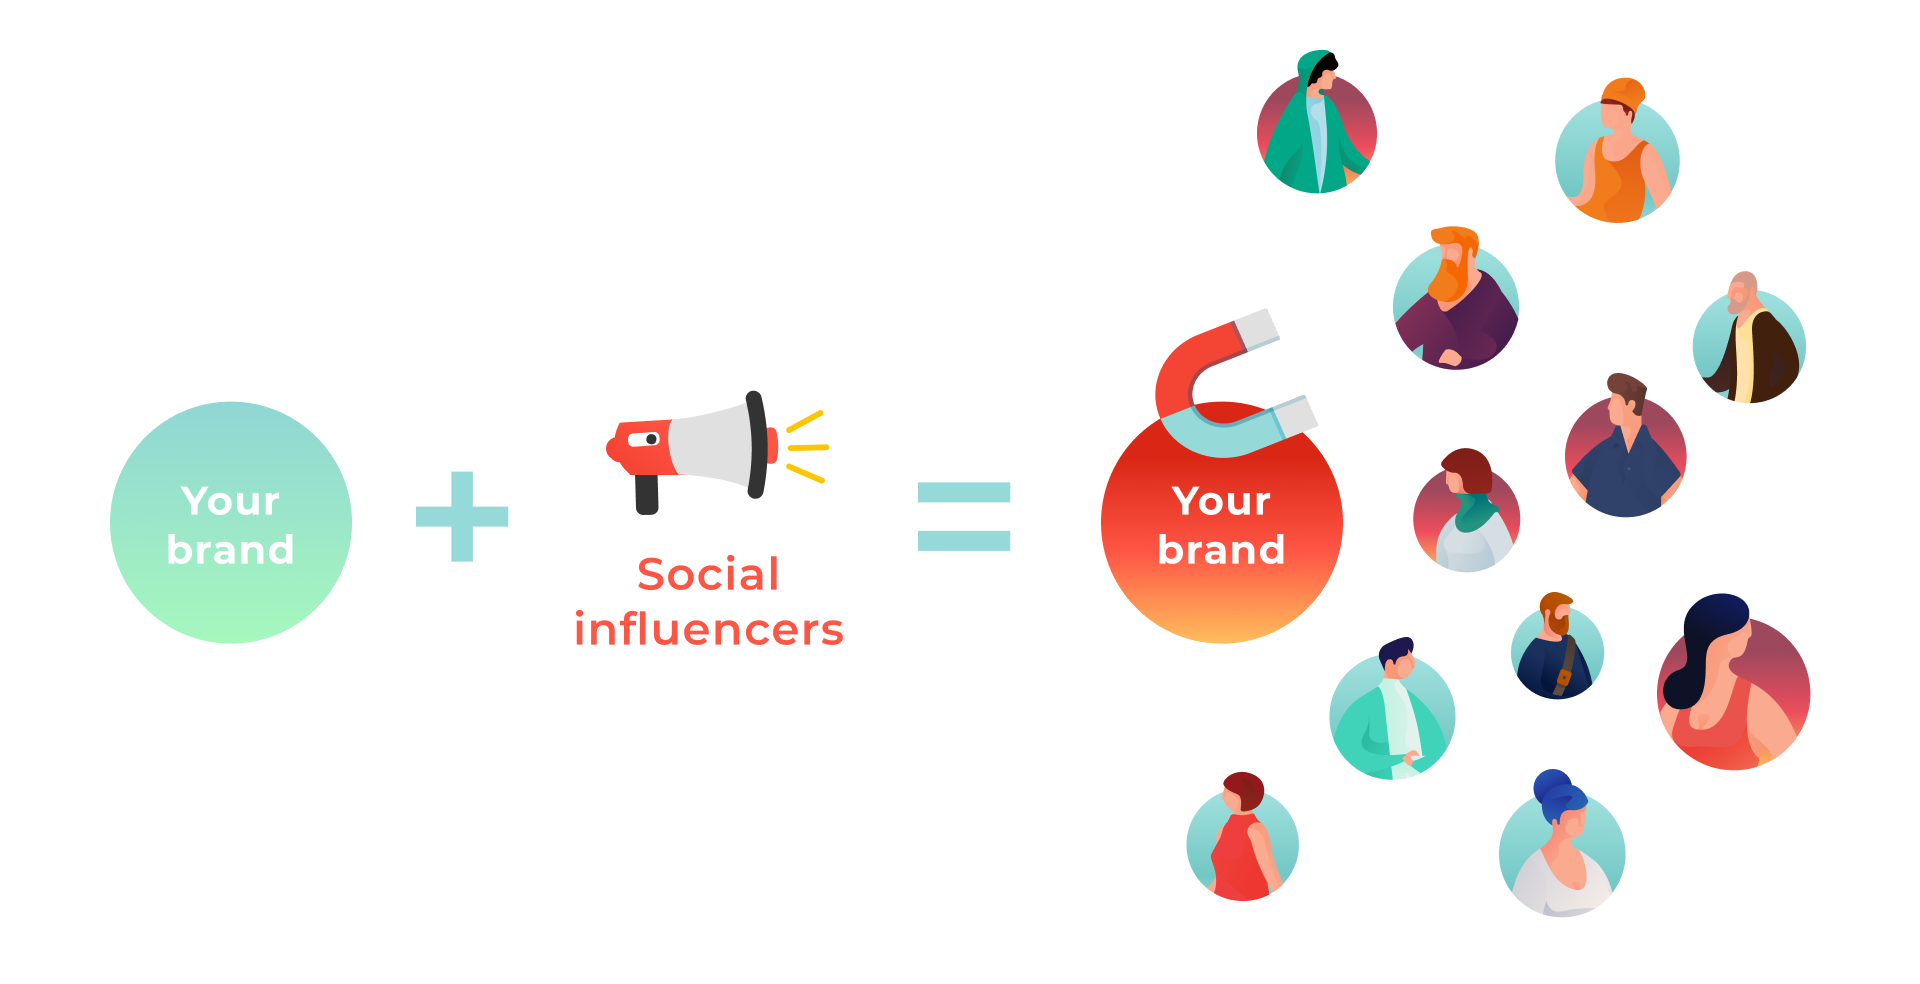 influencers and your brand